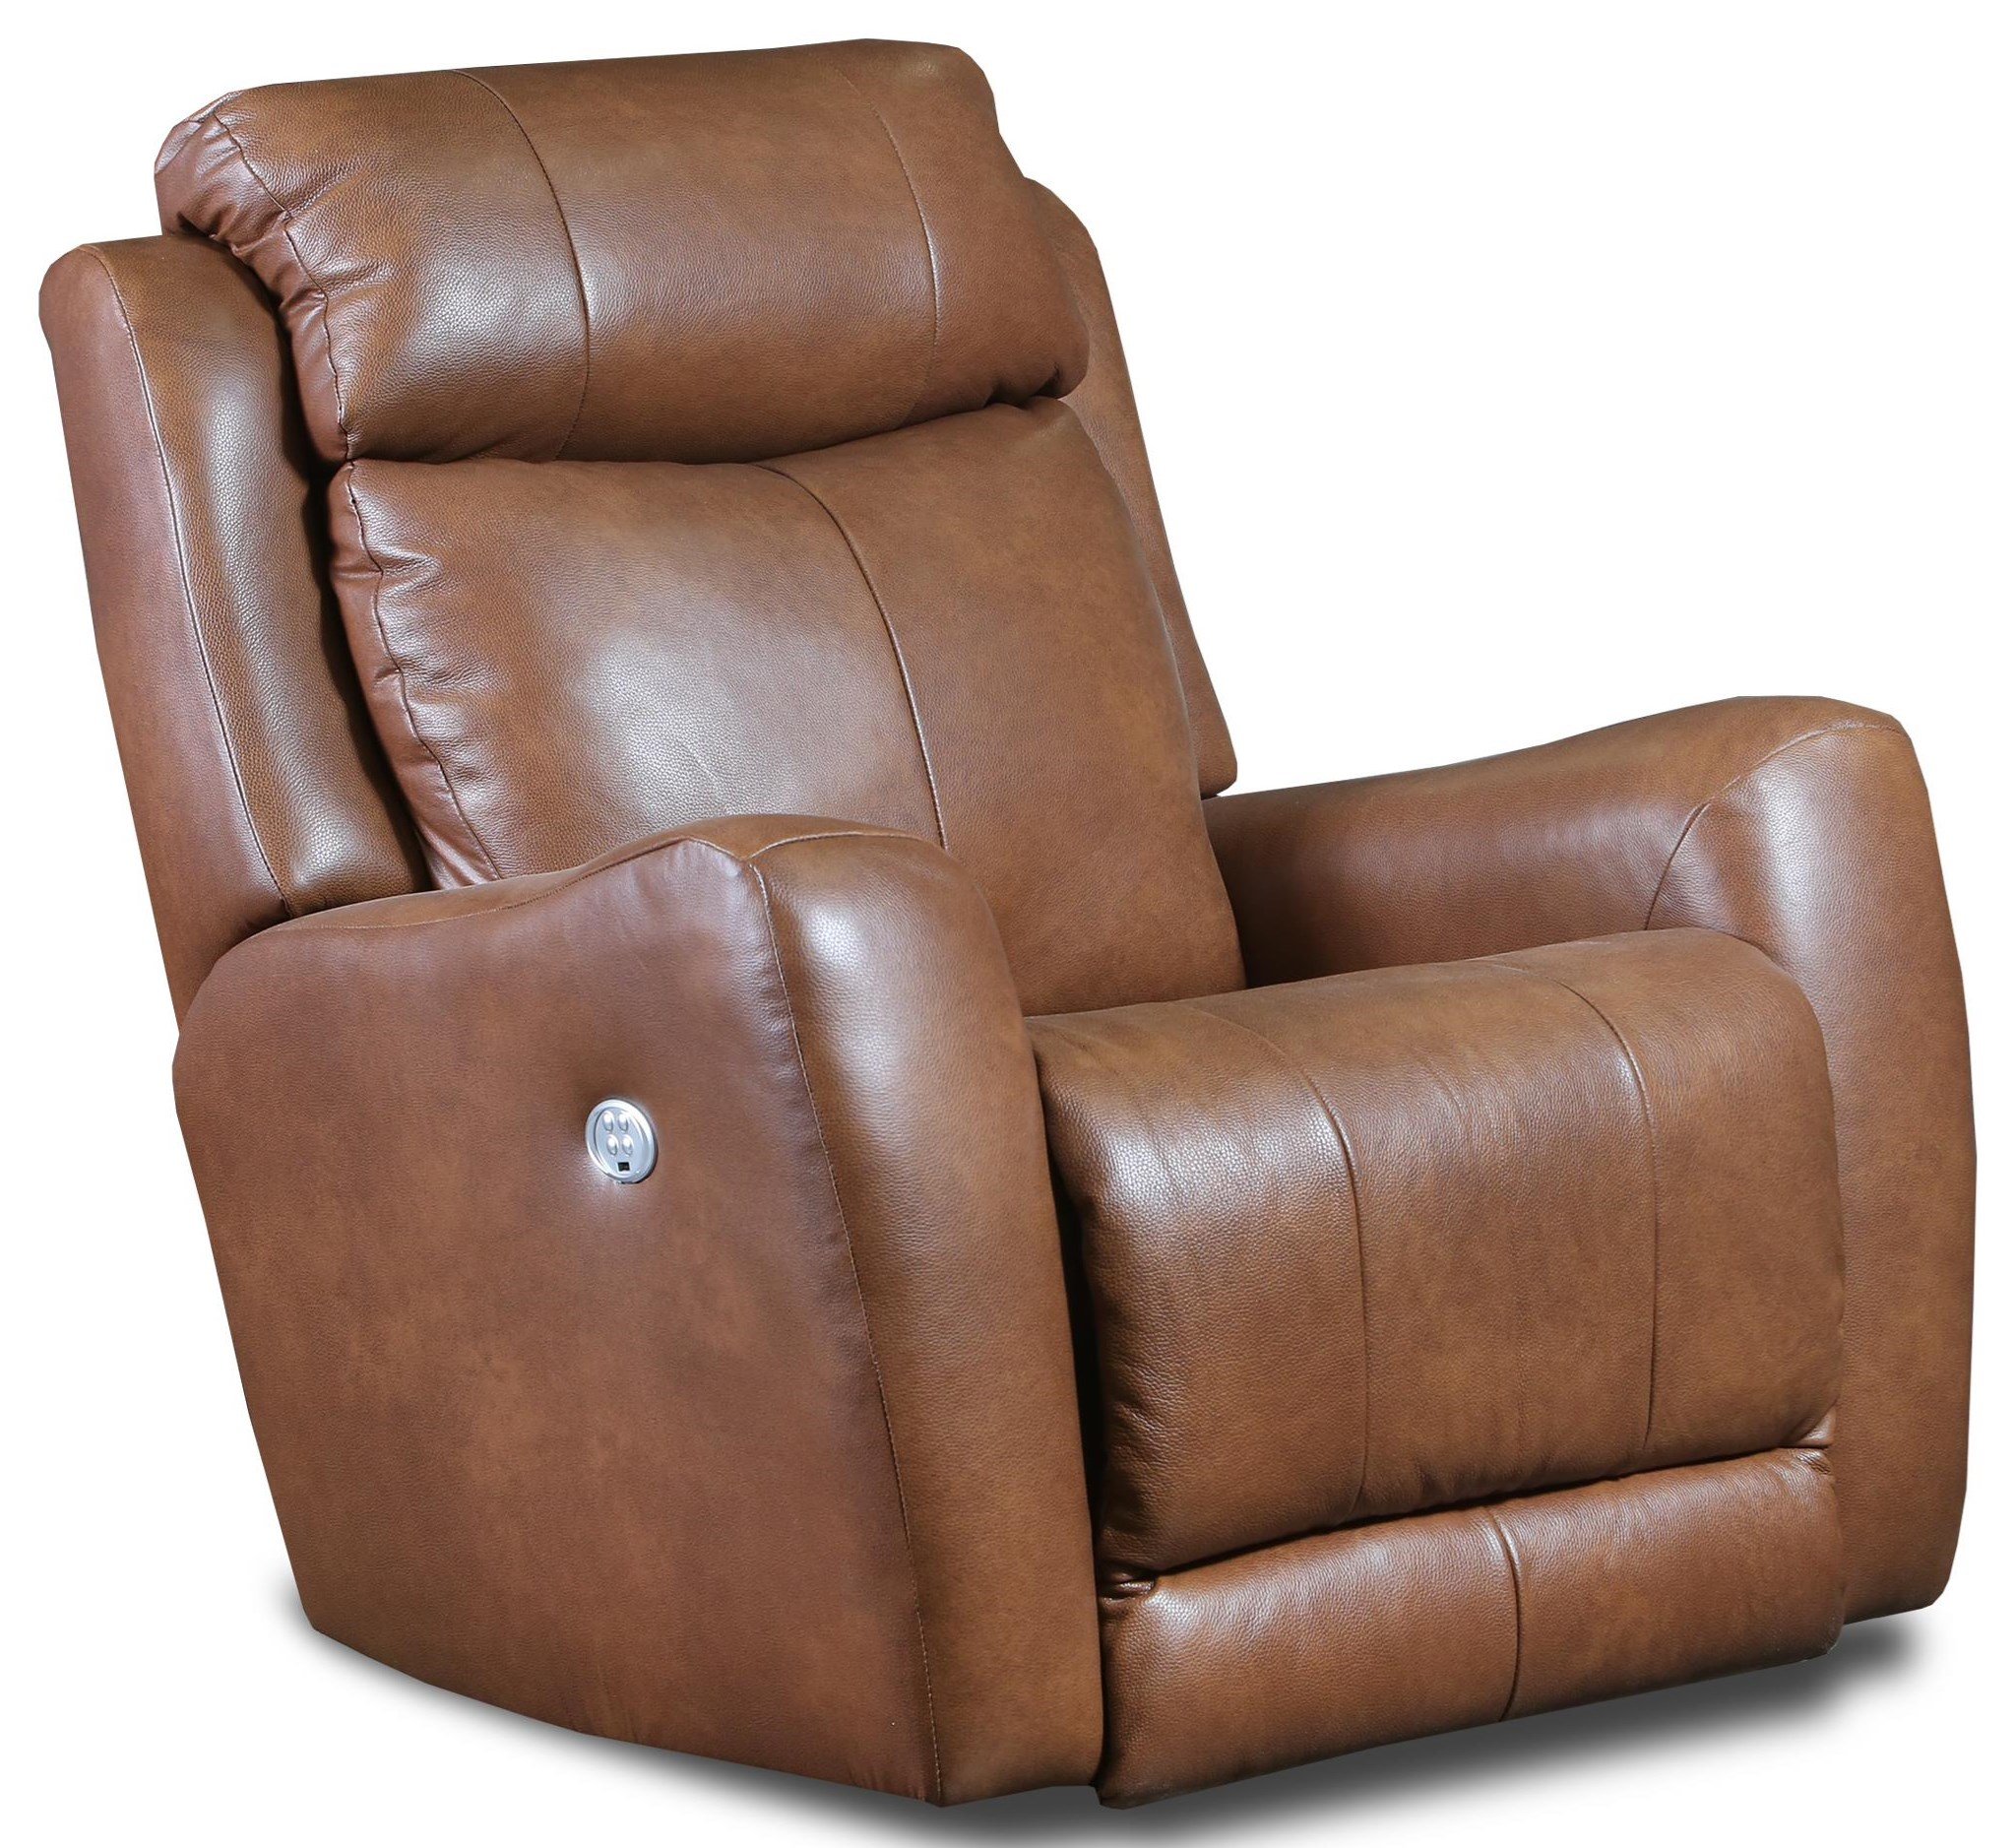 Leather Power Recliner 903-17